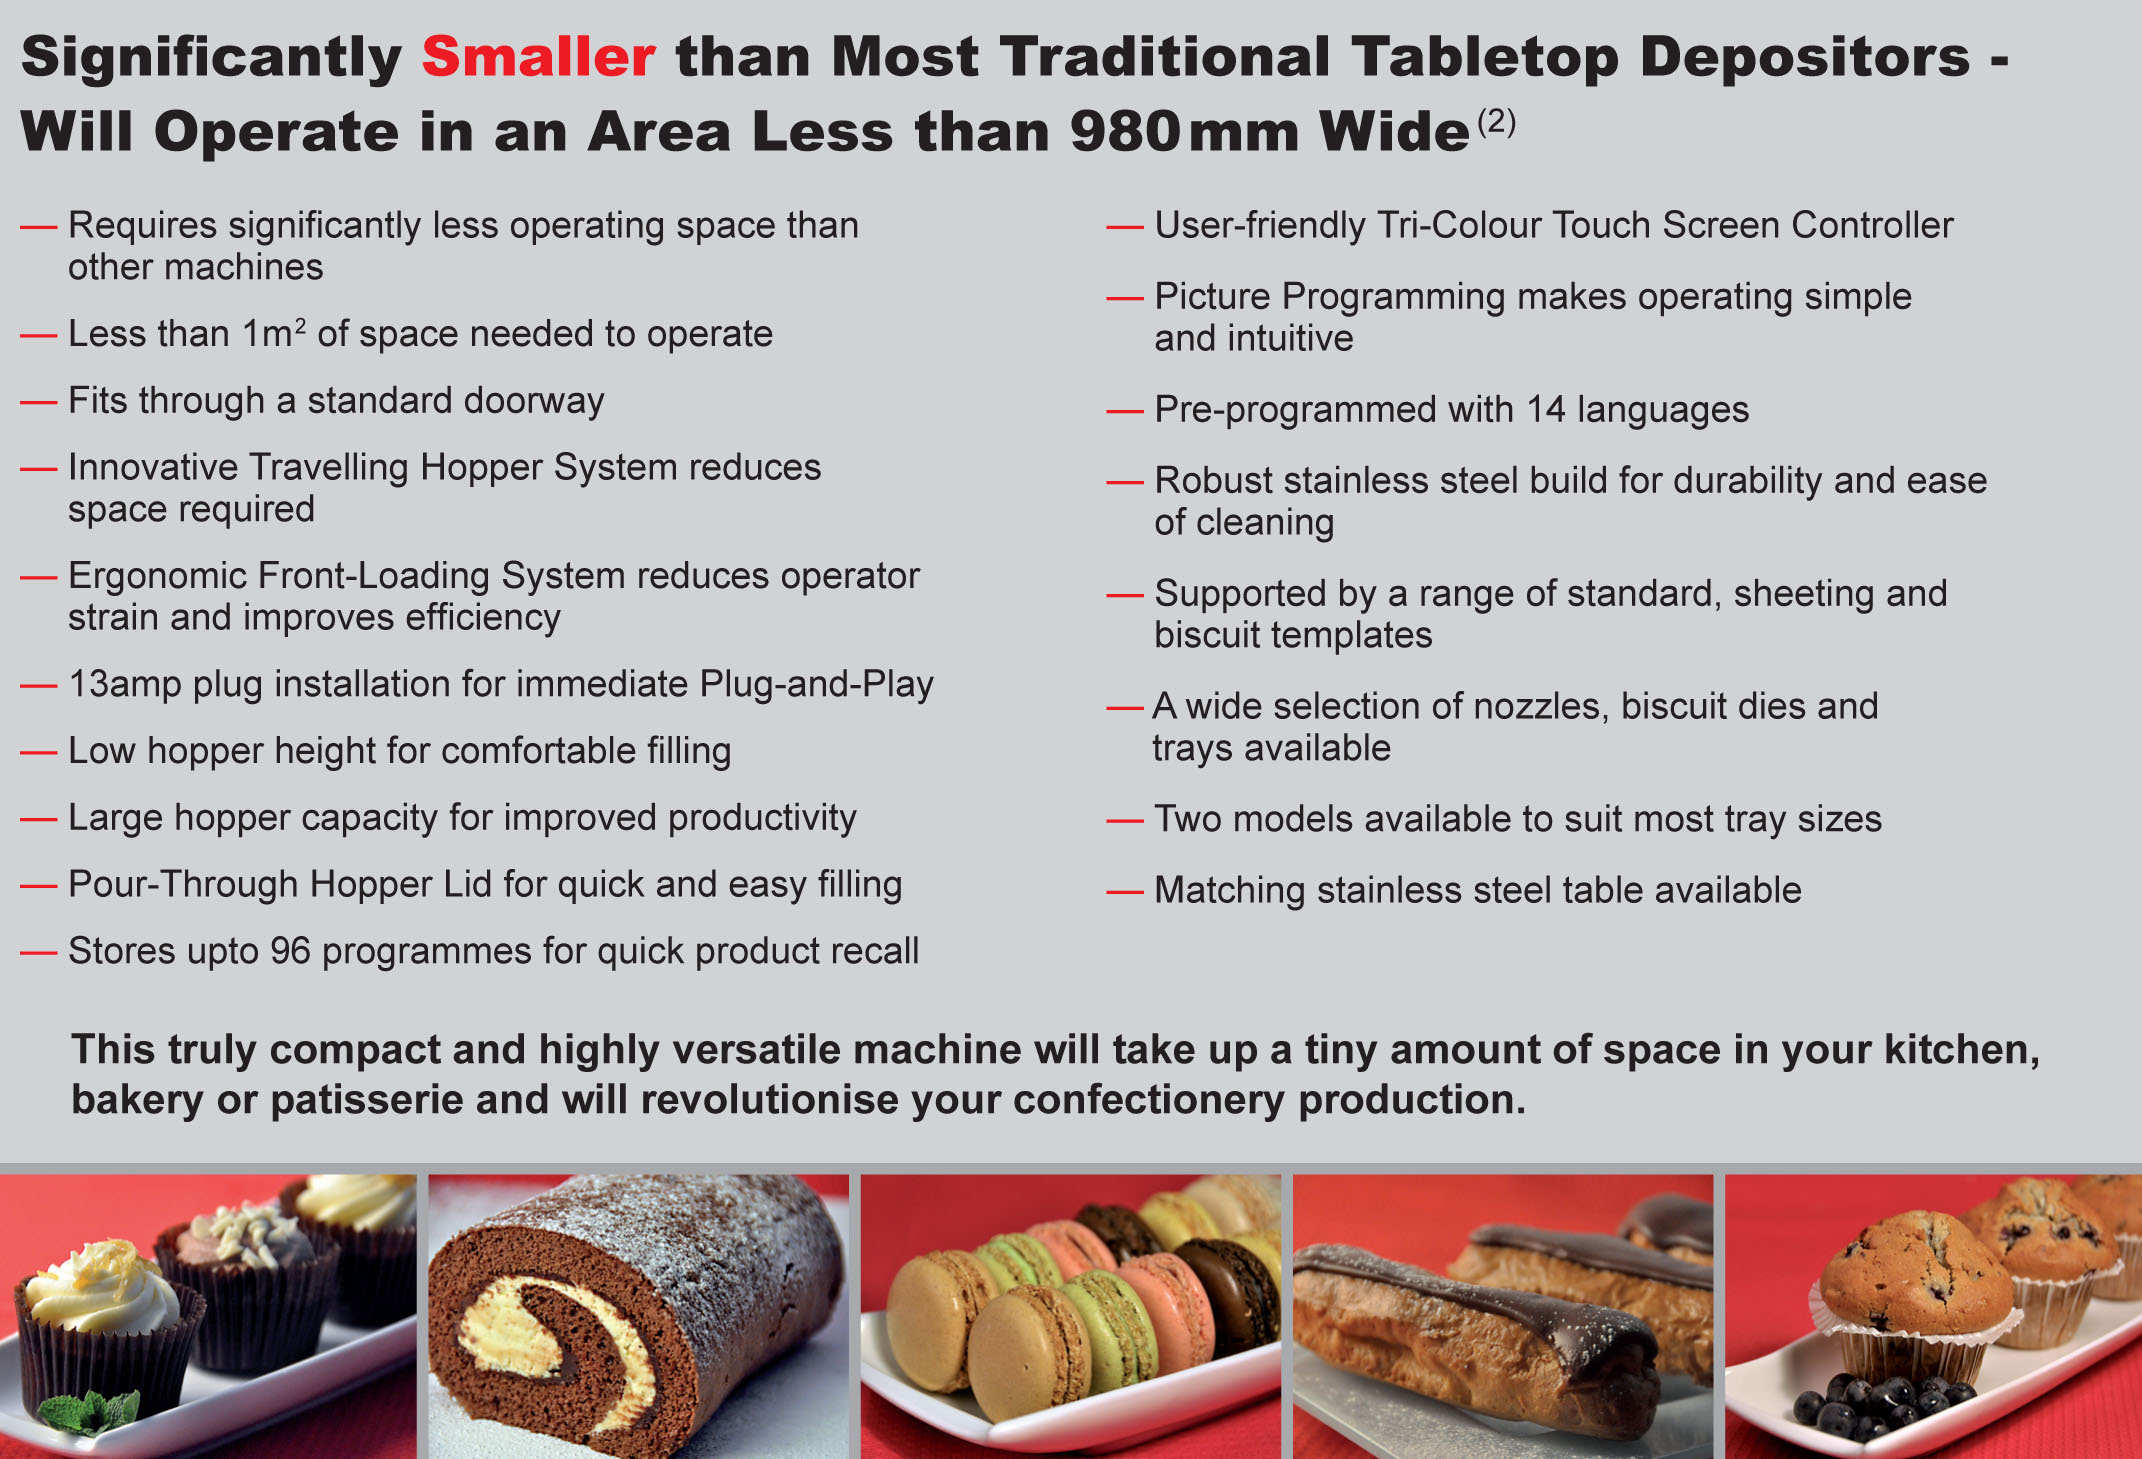 MONO | Epsilon Tabletop Confectionery Depositor Features